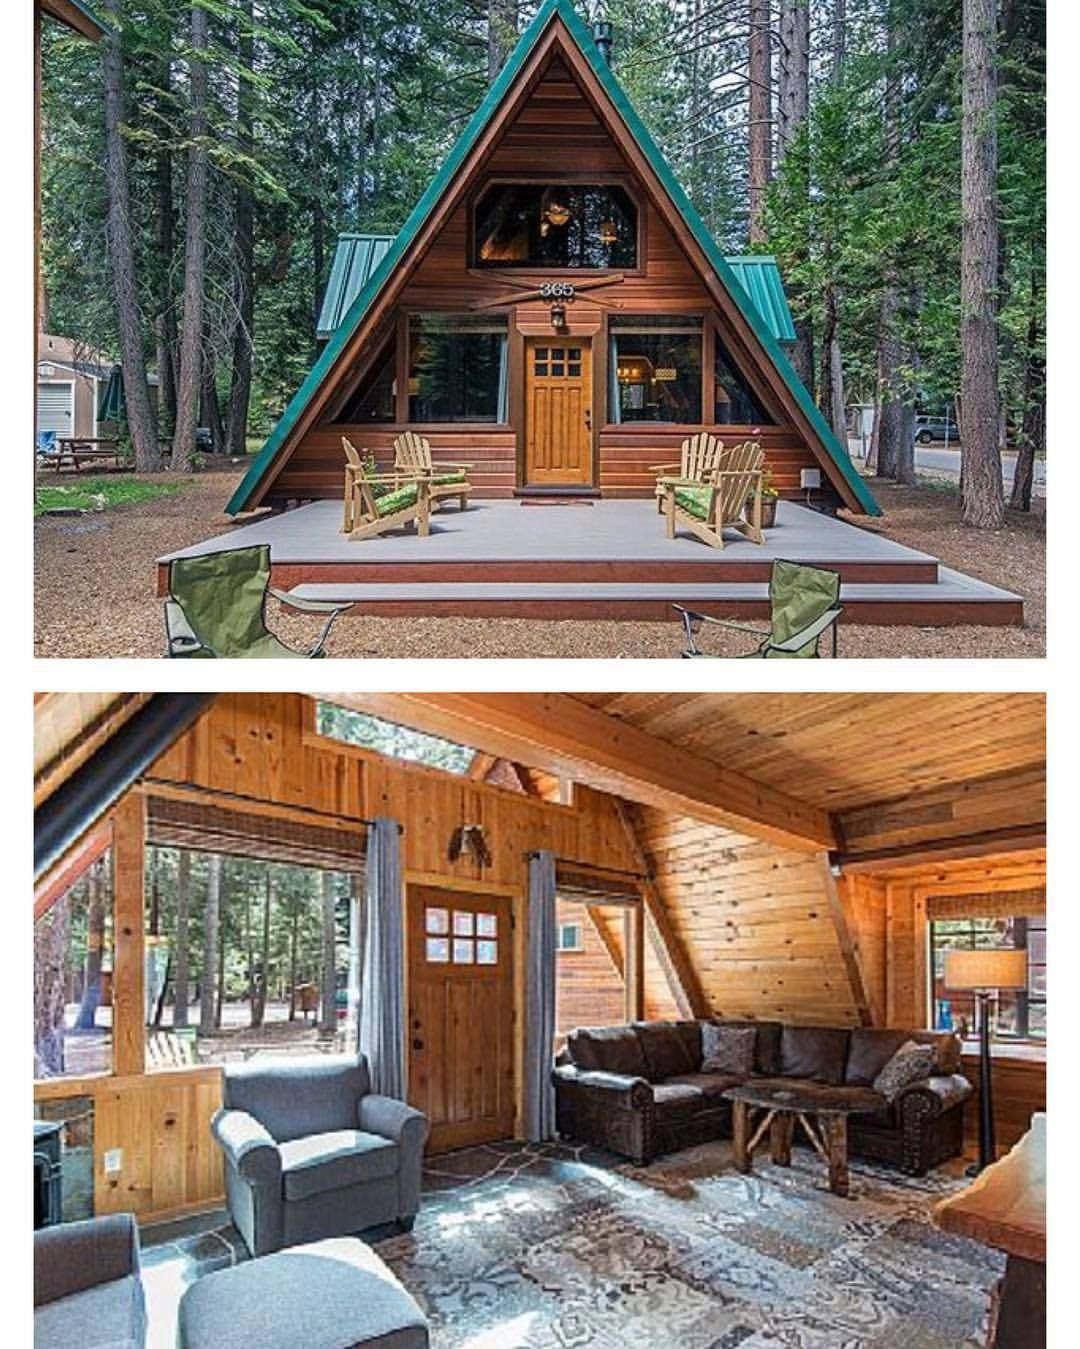 the to vacation base california road americas in camp yosemite a door wild cabin rentals states united old cabins